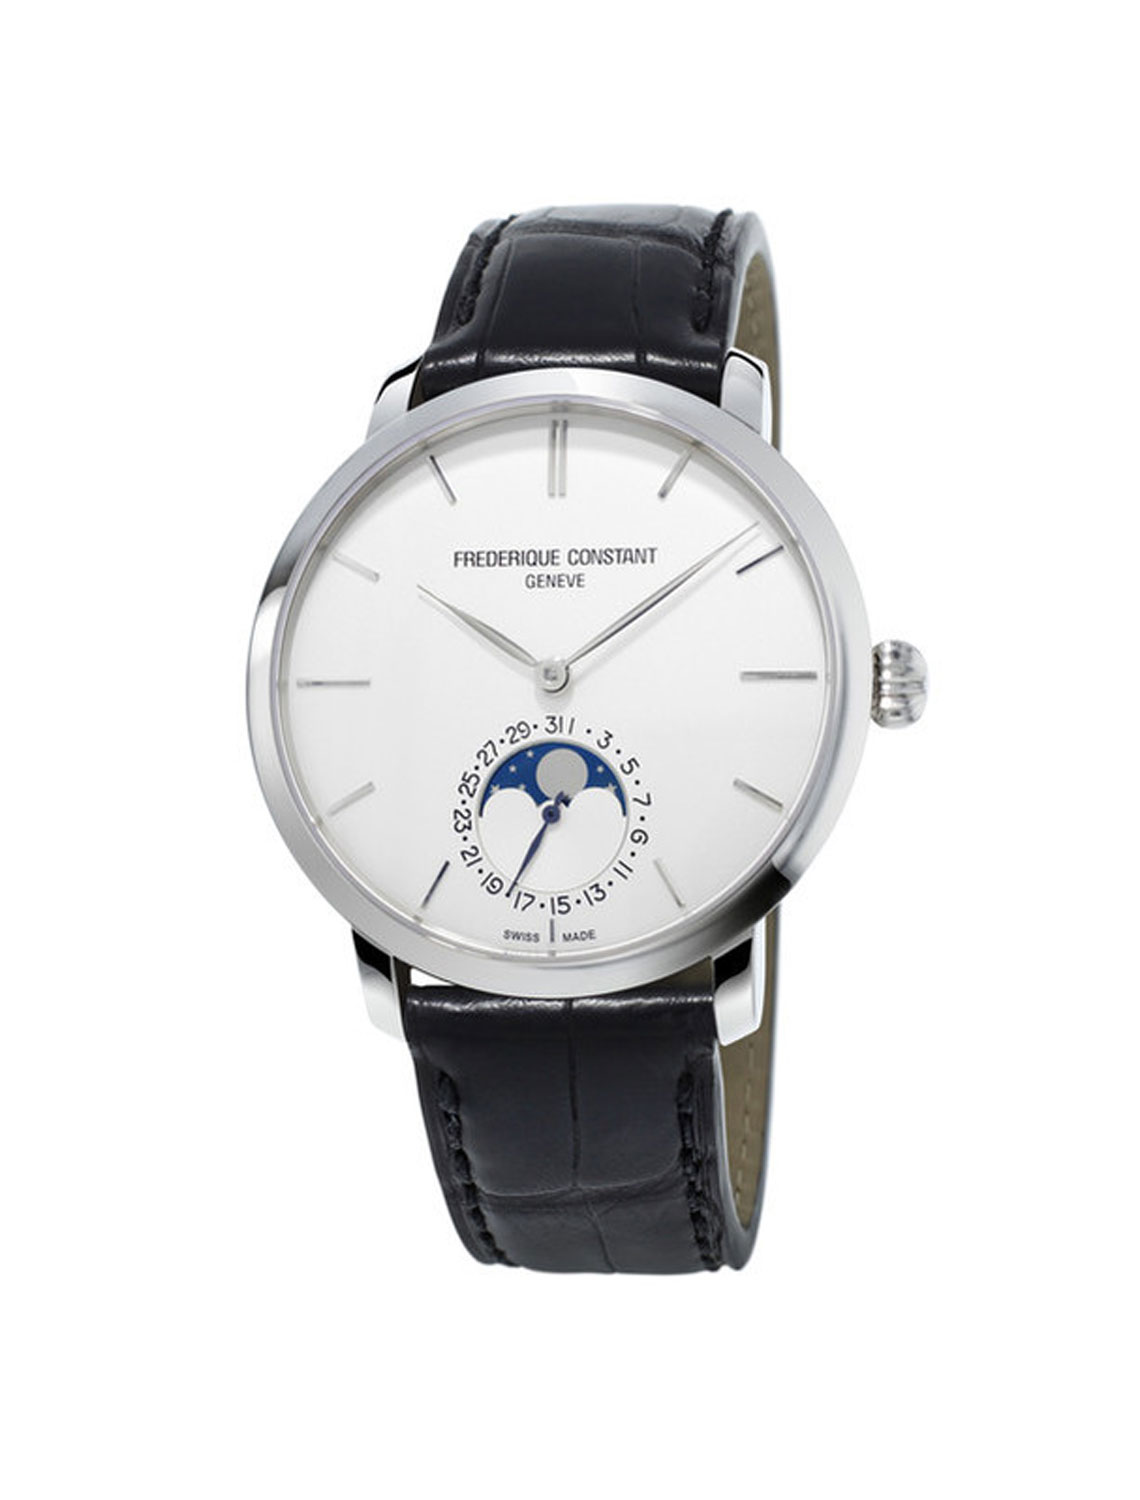 The_Ink_Collective_Creative_Content_Design_Agency_Paris_Sydney_Luxury_Editorial_Frederique_Constant–CEO_Peter_Stas_Interview_Luxury_Watches_Timepieces_Swiss_Manufacture–6.jpg